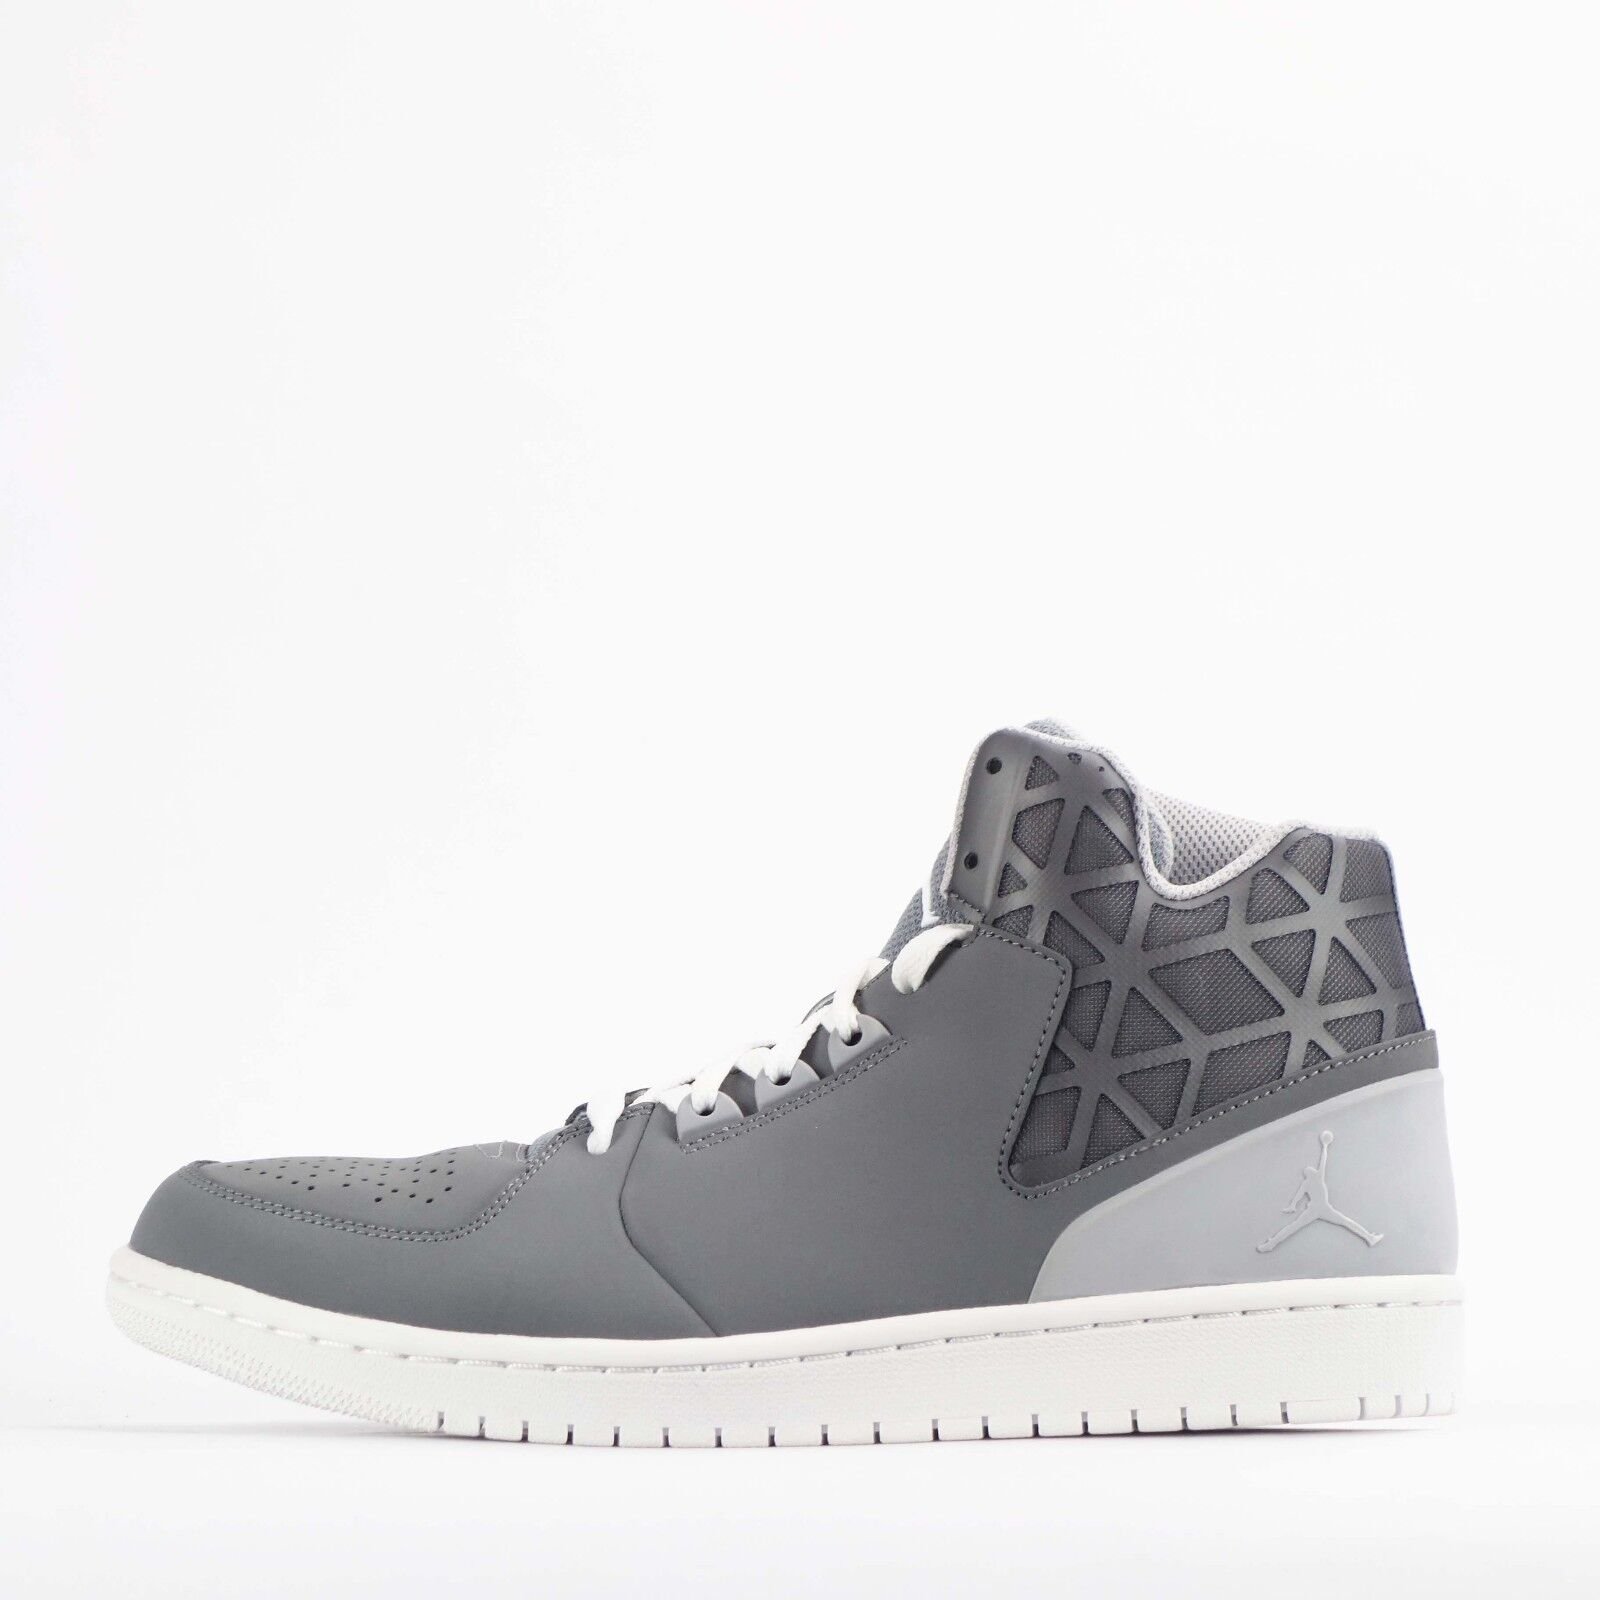 Nike Jordan 1 Flight 3 Mens Trainers shoes Cool Grey White